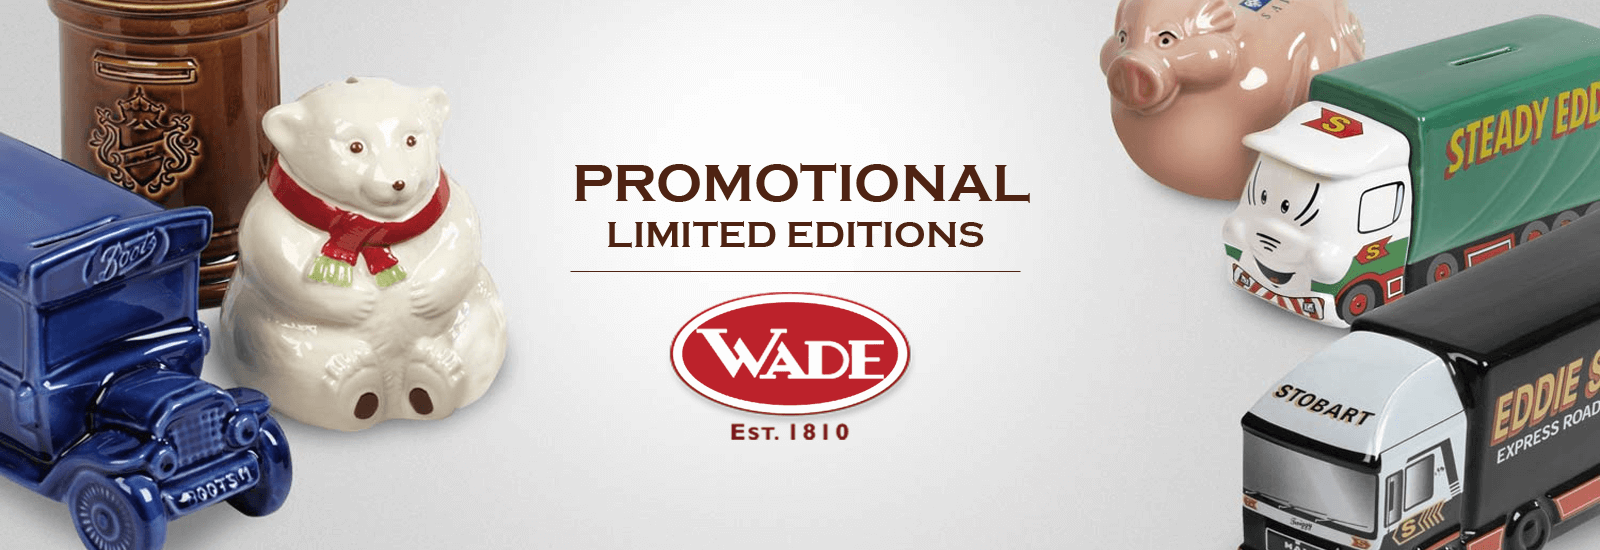 Wade Limited editions banner